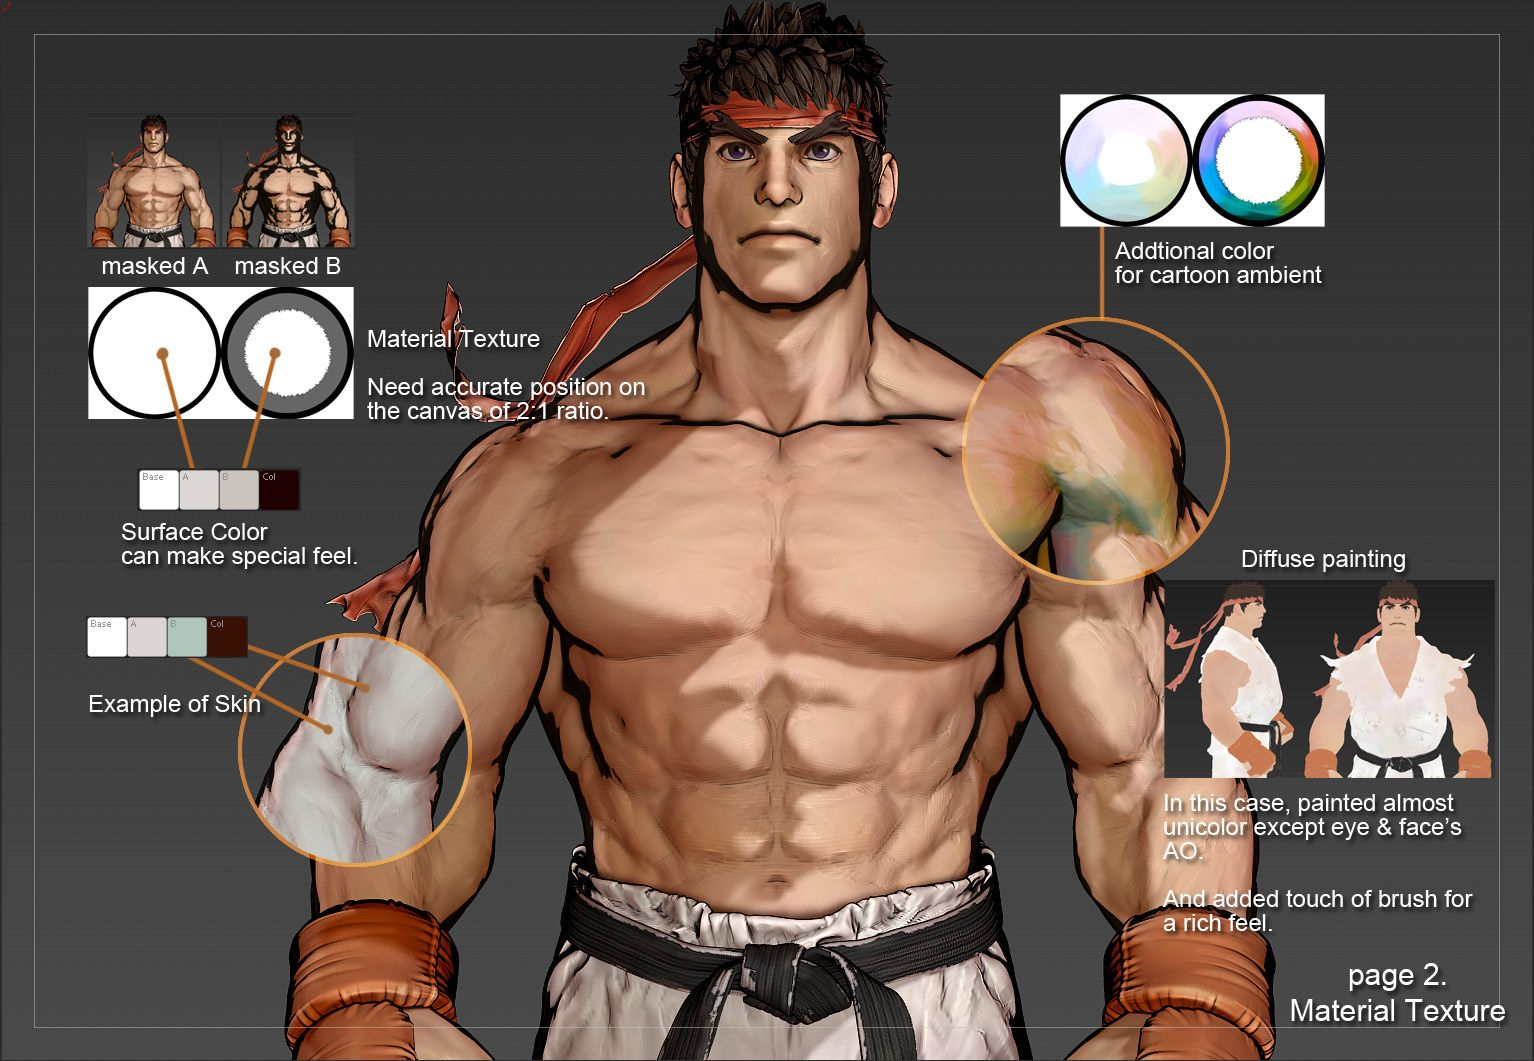 RYU - Comicon Challenge 2014  http://www.zbrushcentral.com/showthread.php?185785-RYU-Comicon-Challenge-2014